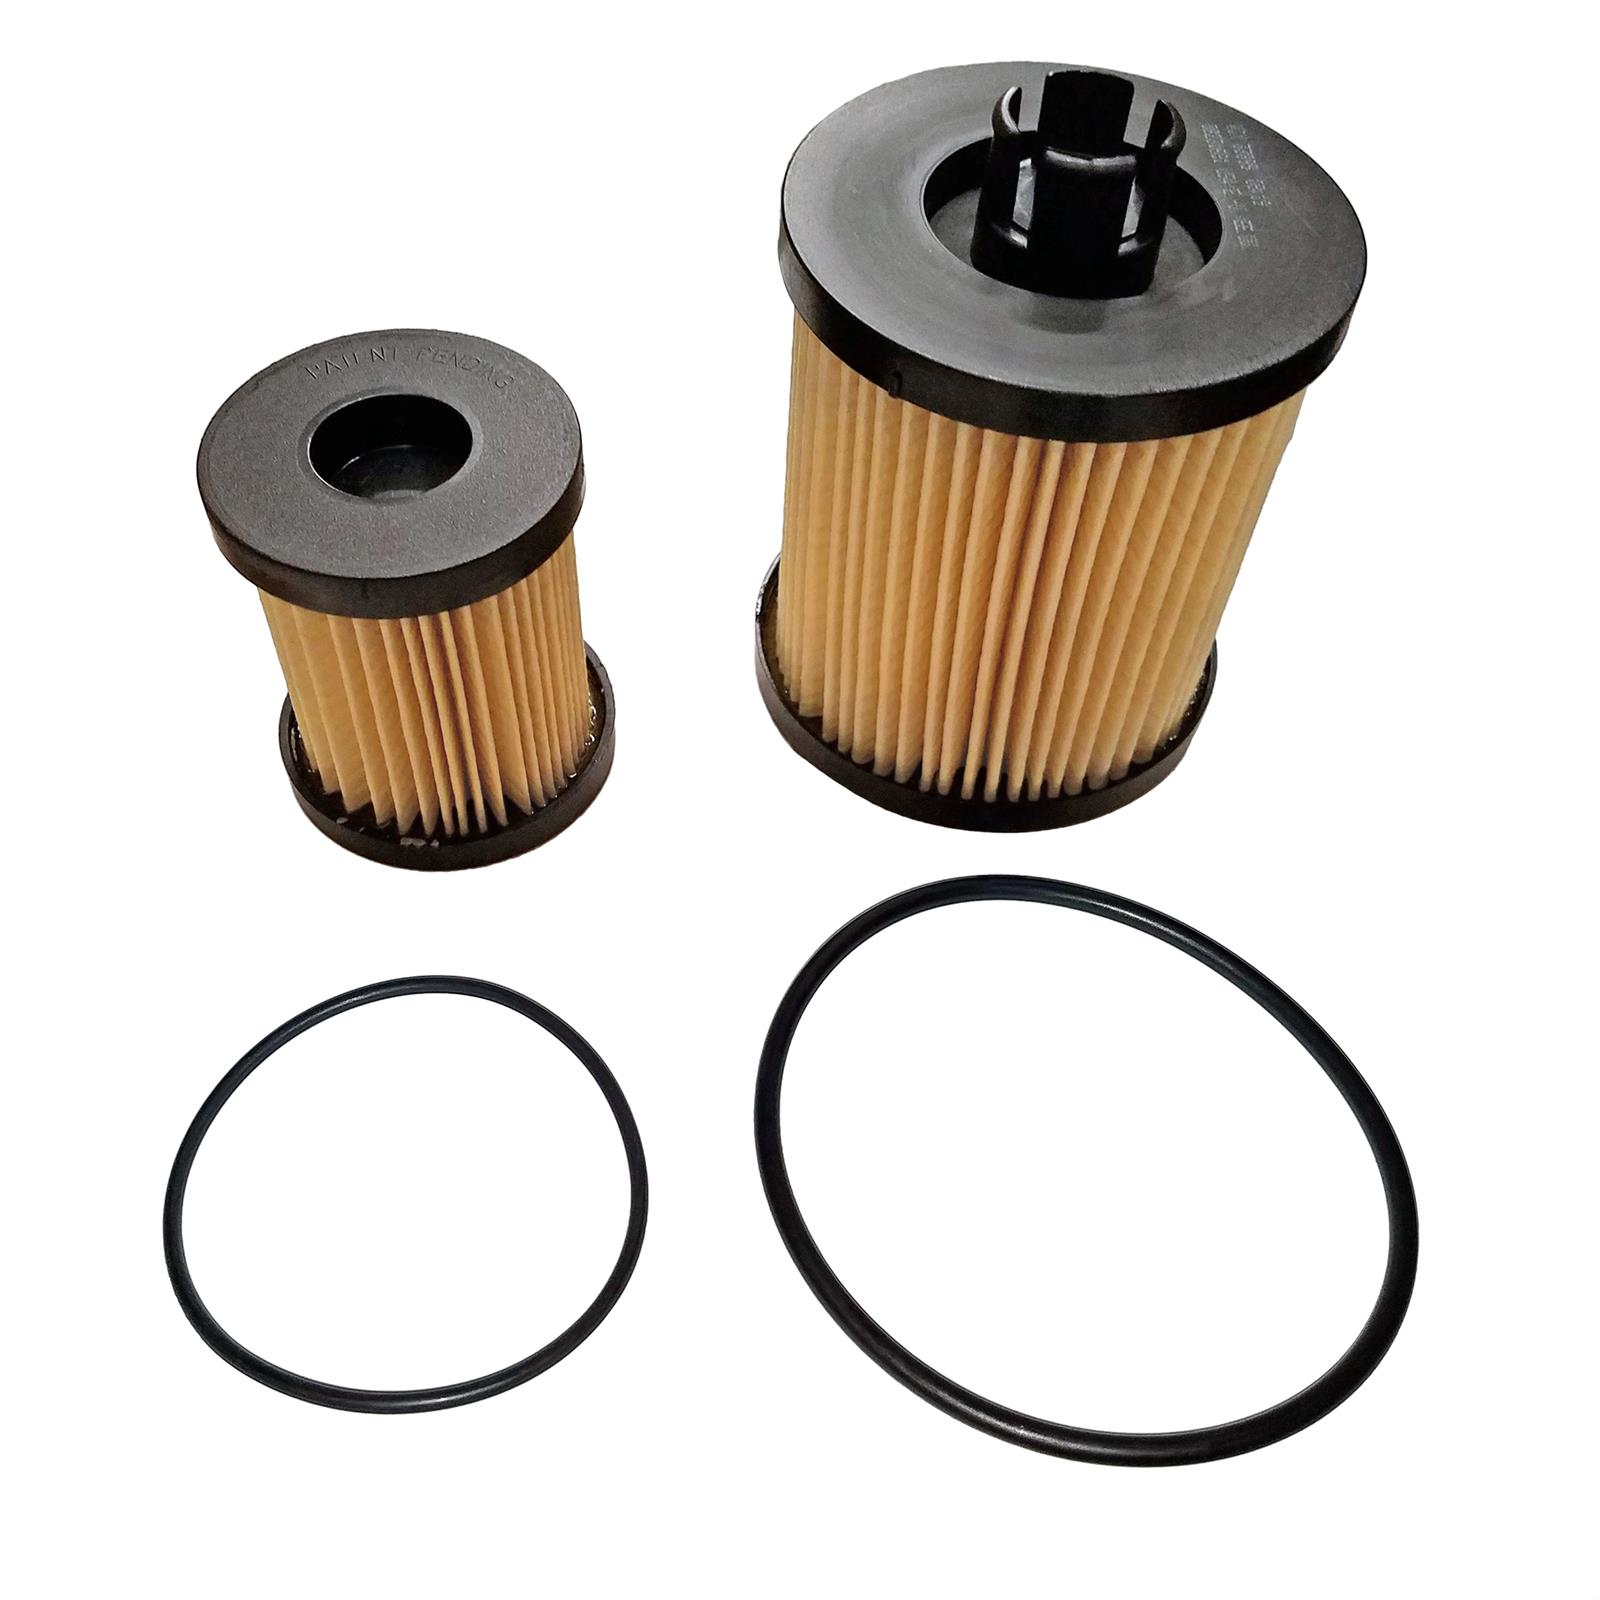 Wix Filters Fuel 33899 Free Shipping On Orders Over 99 At Racing Filter Summit